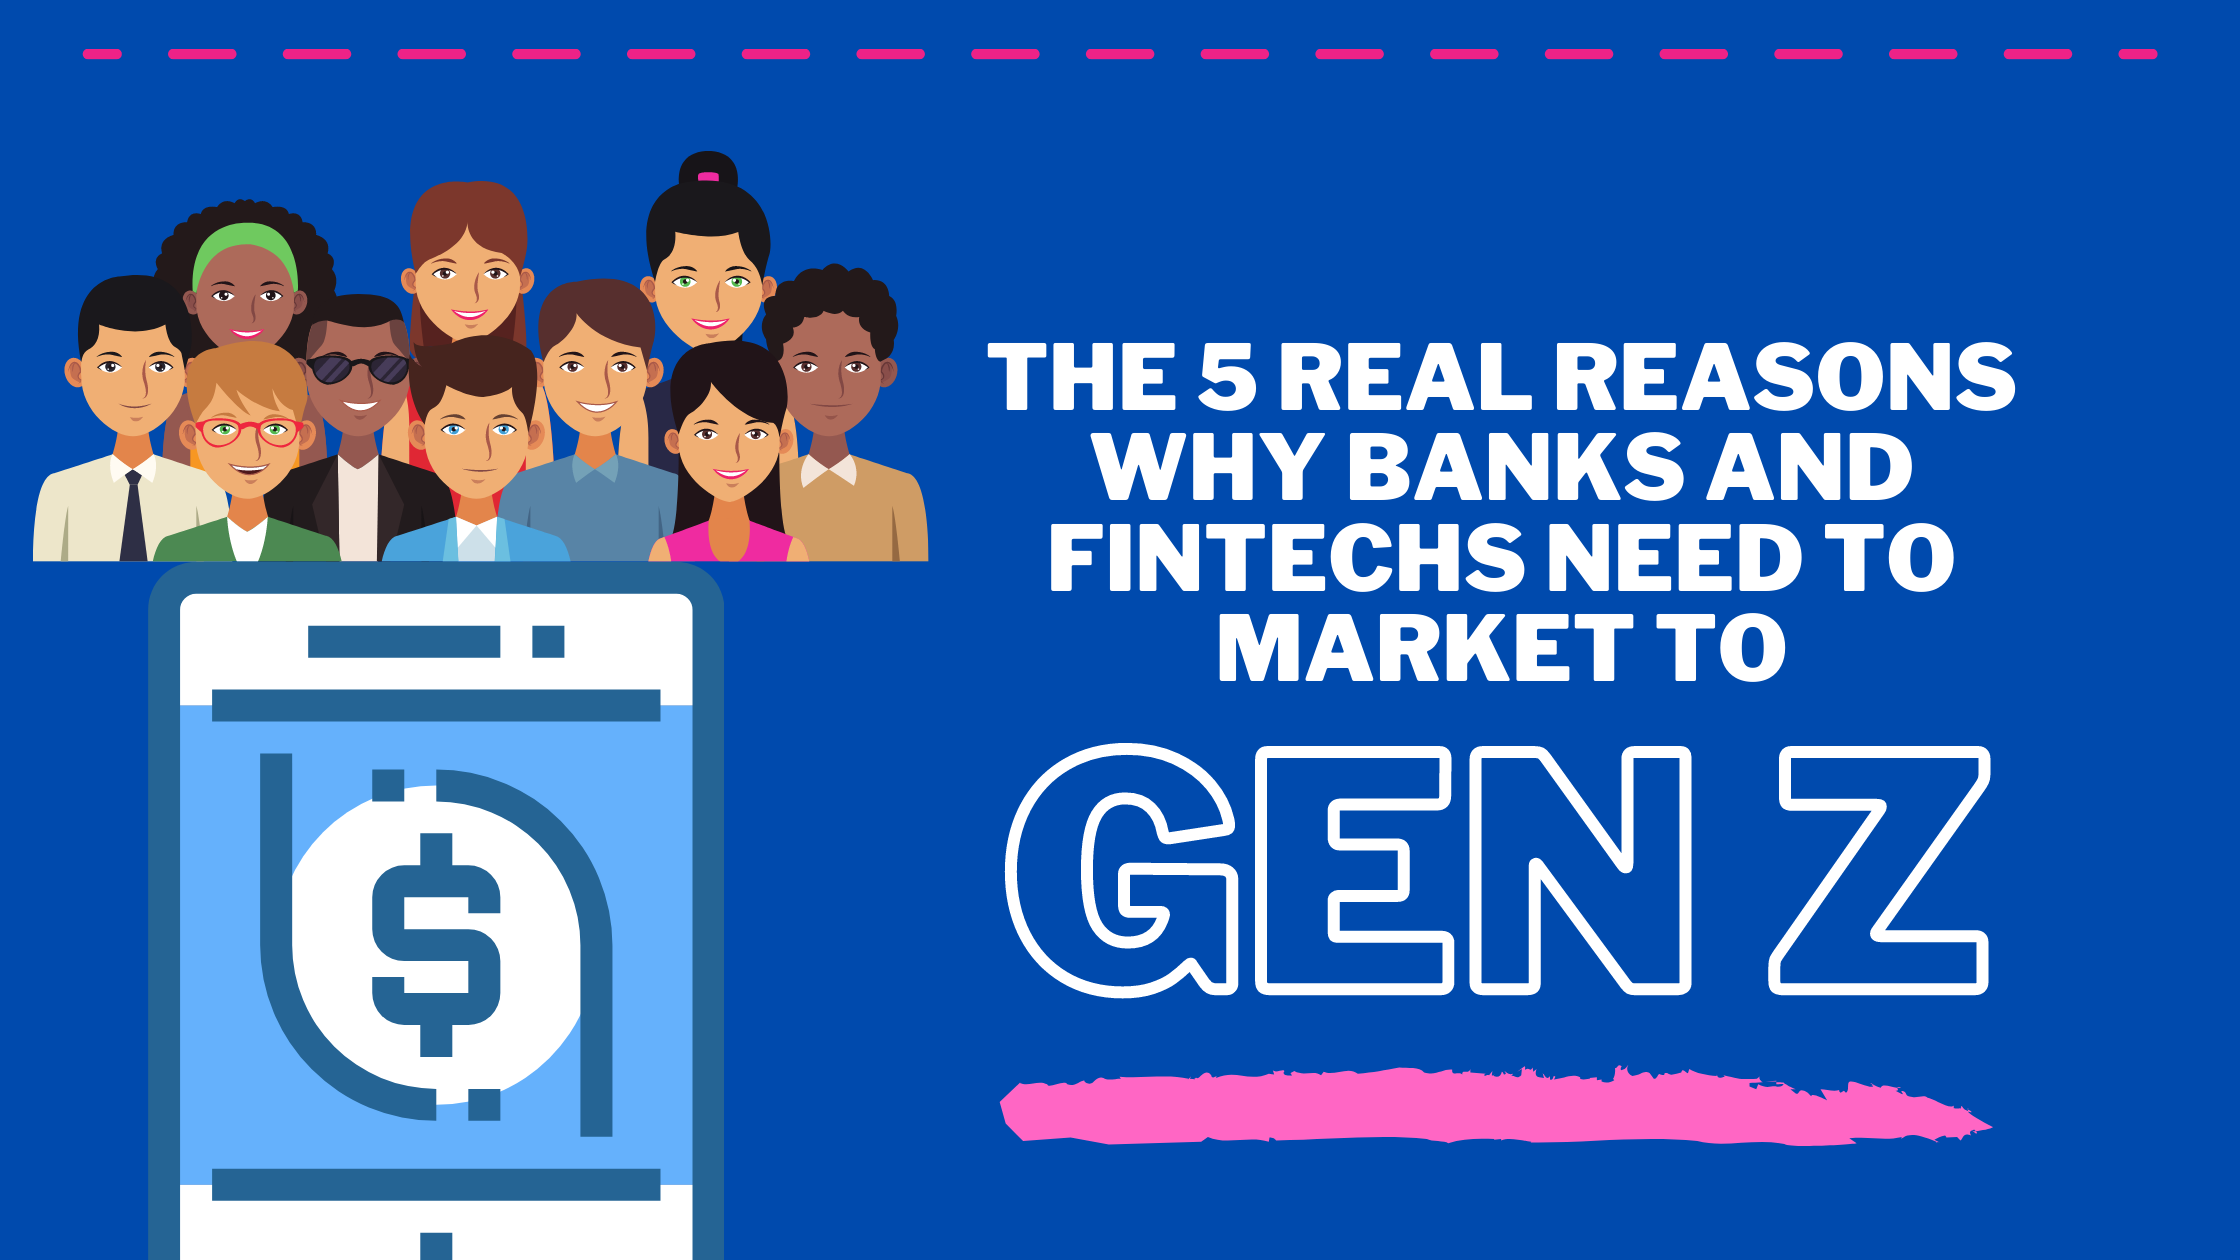 The 5 Real Reasons Why Banks and Fintechs Need To Market To Gen Z